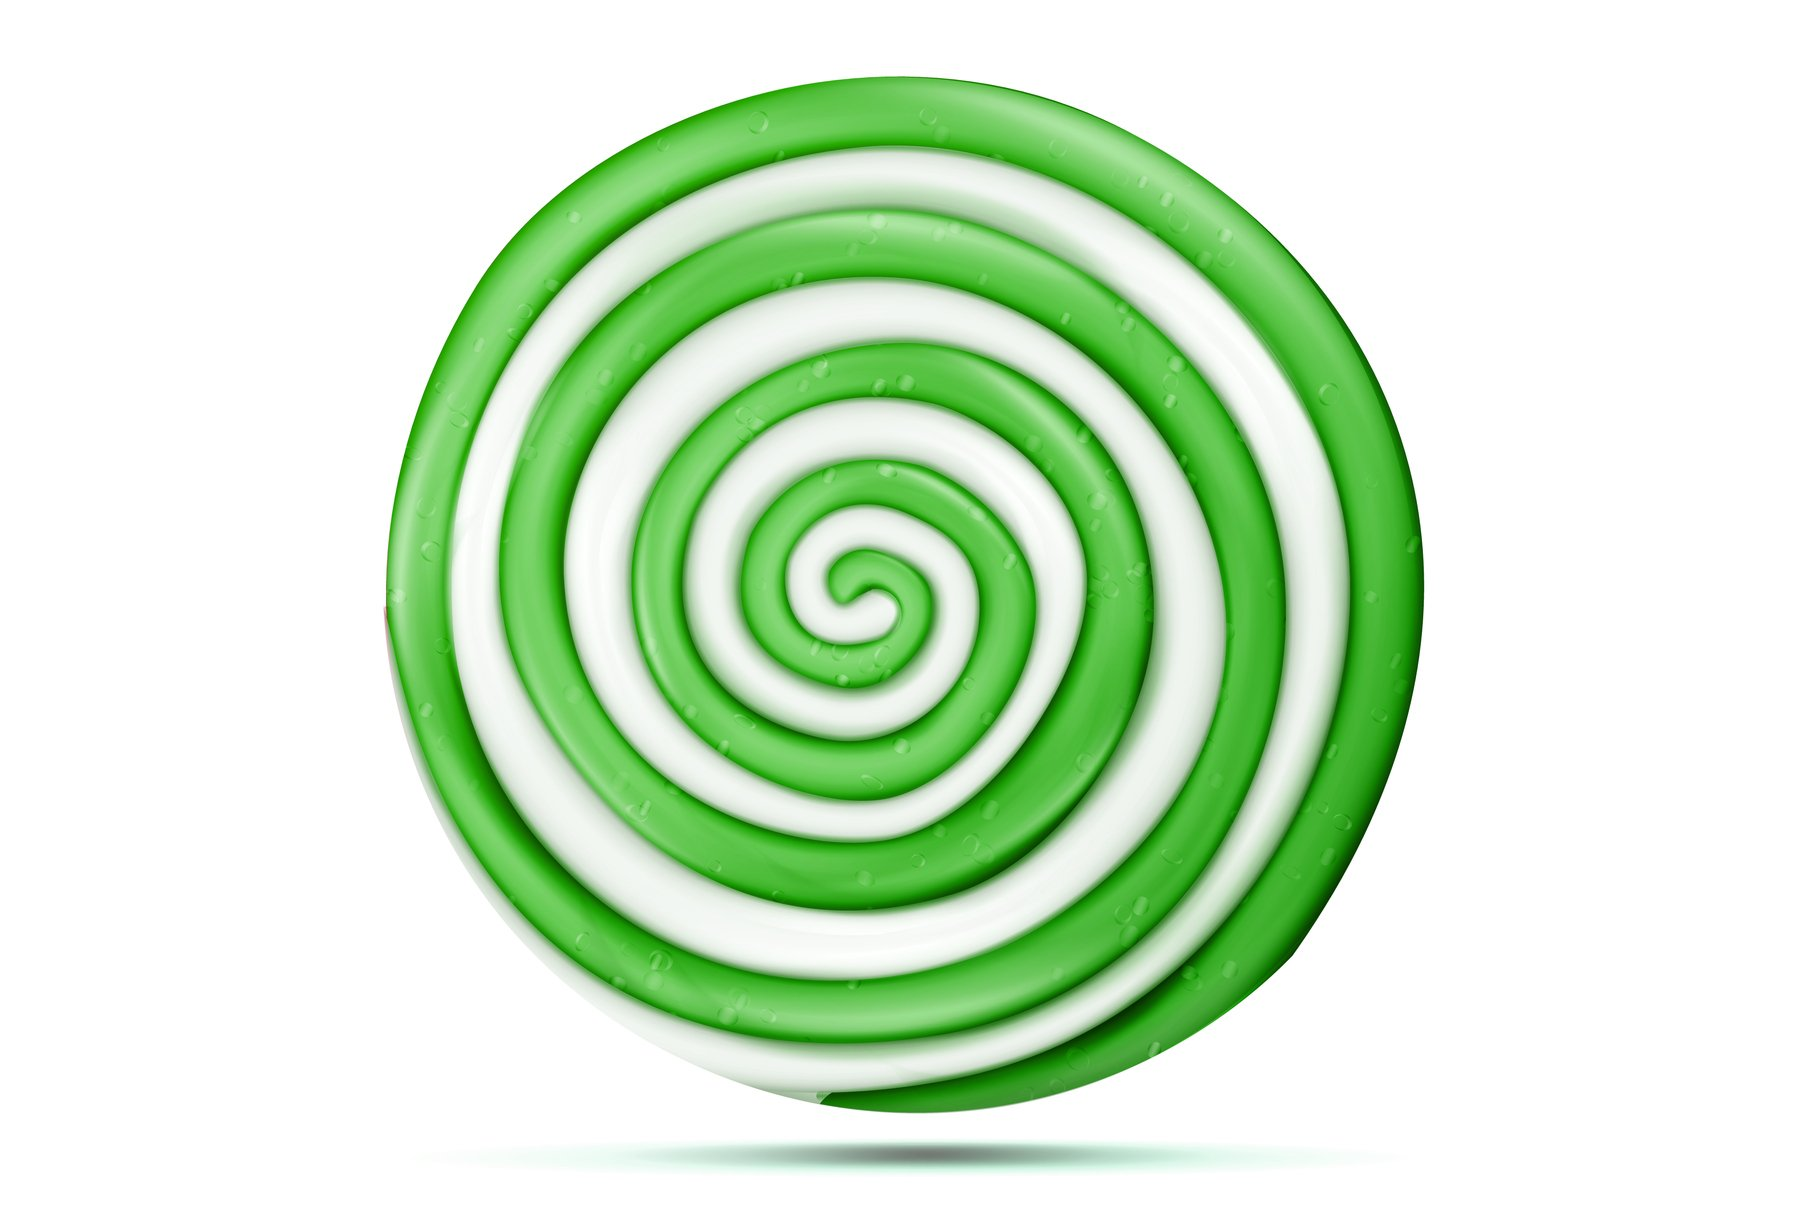 Lollipop Isolated Vector. Green Sweet Candy Round Swirl example image 1